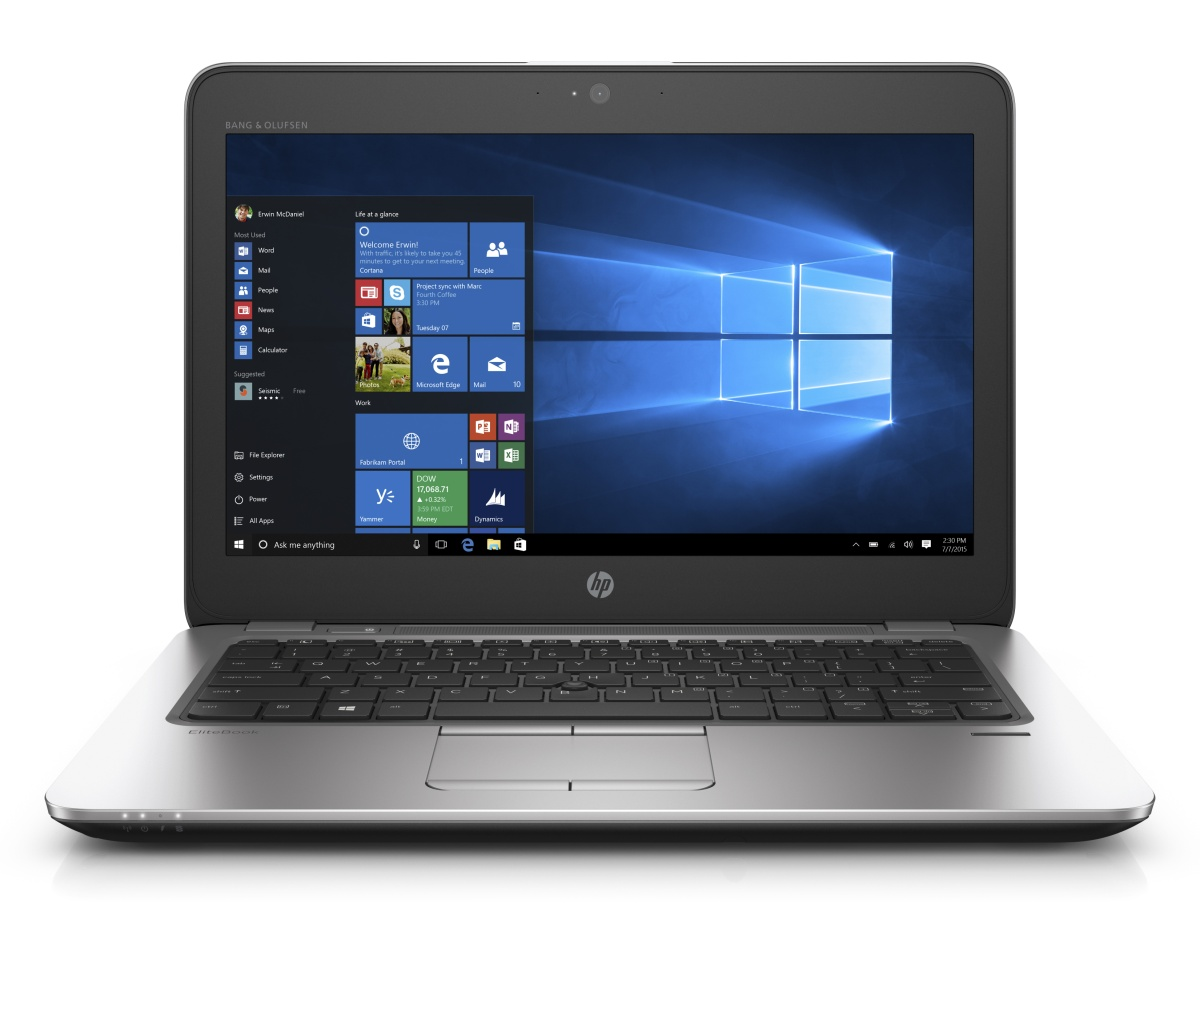 "HP EliteBook 725 G3 A10 Pro-8700B 12.5"" HD CAM, 4GB, 500GB, ac, BT, FpR, backlit kbd, Win 10 Pro downgraded"